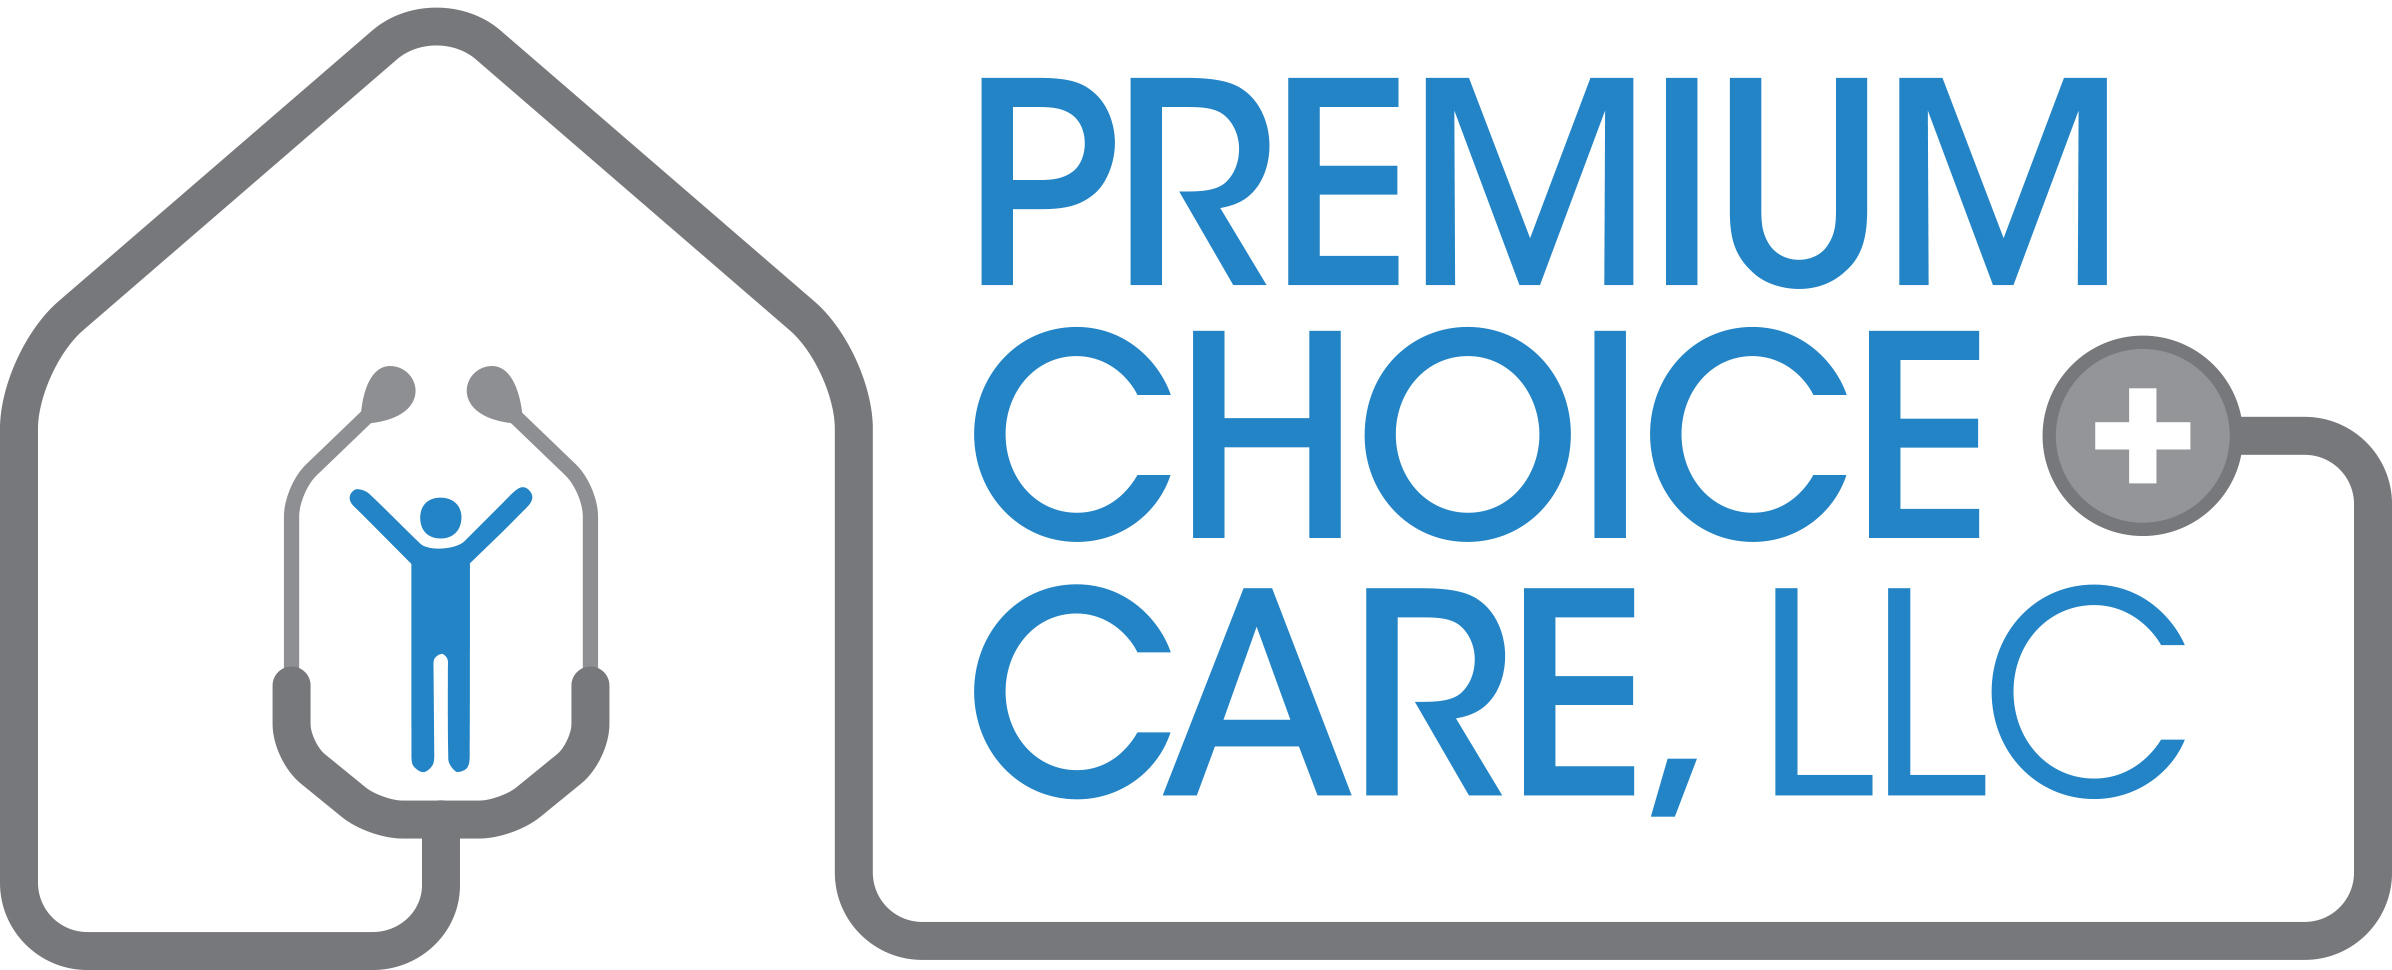 Premium Choice Care